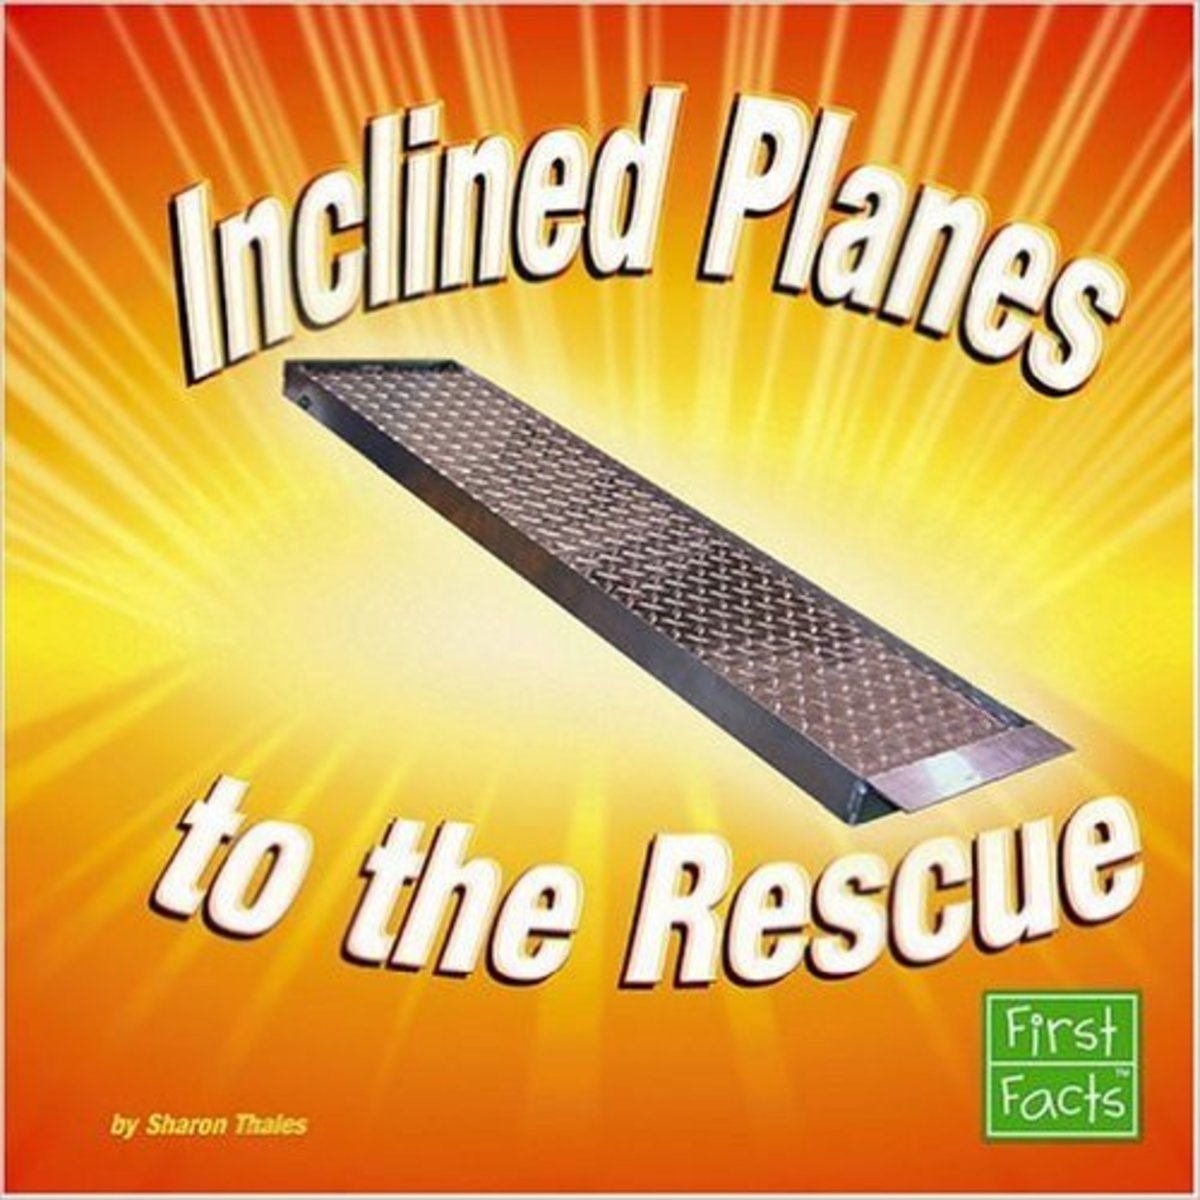 Inclined Planes to the Rescue (Simple Machines to the Rescue) by Sharon Thales - Image credit: amazon.com